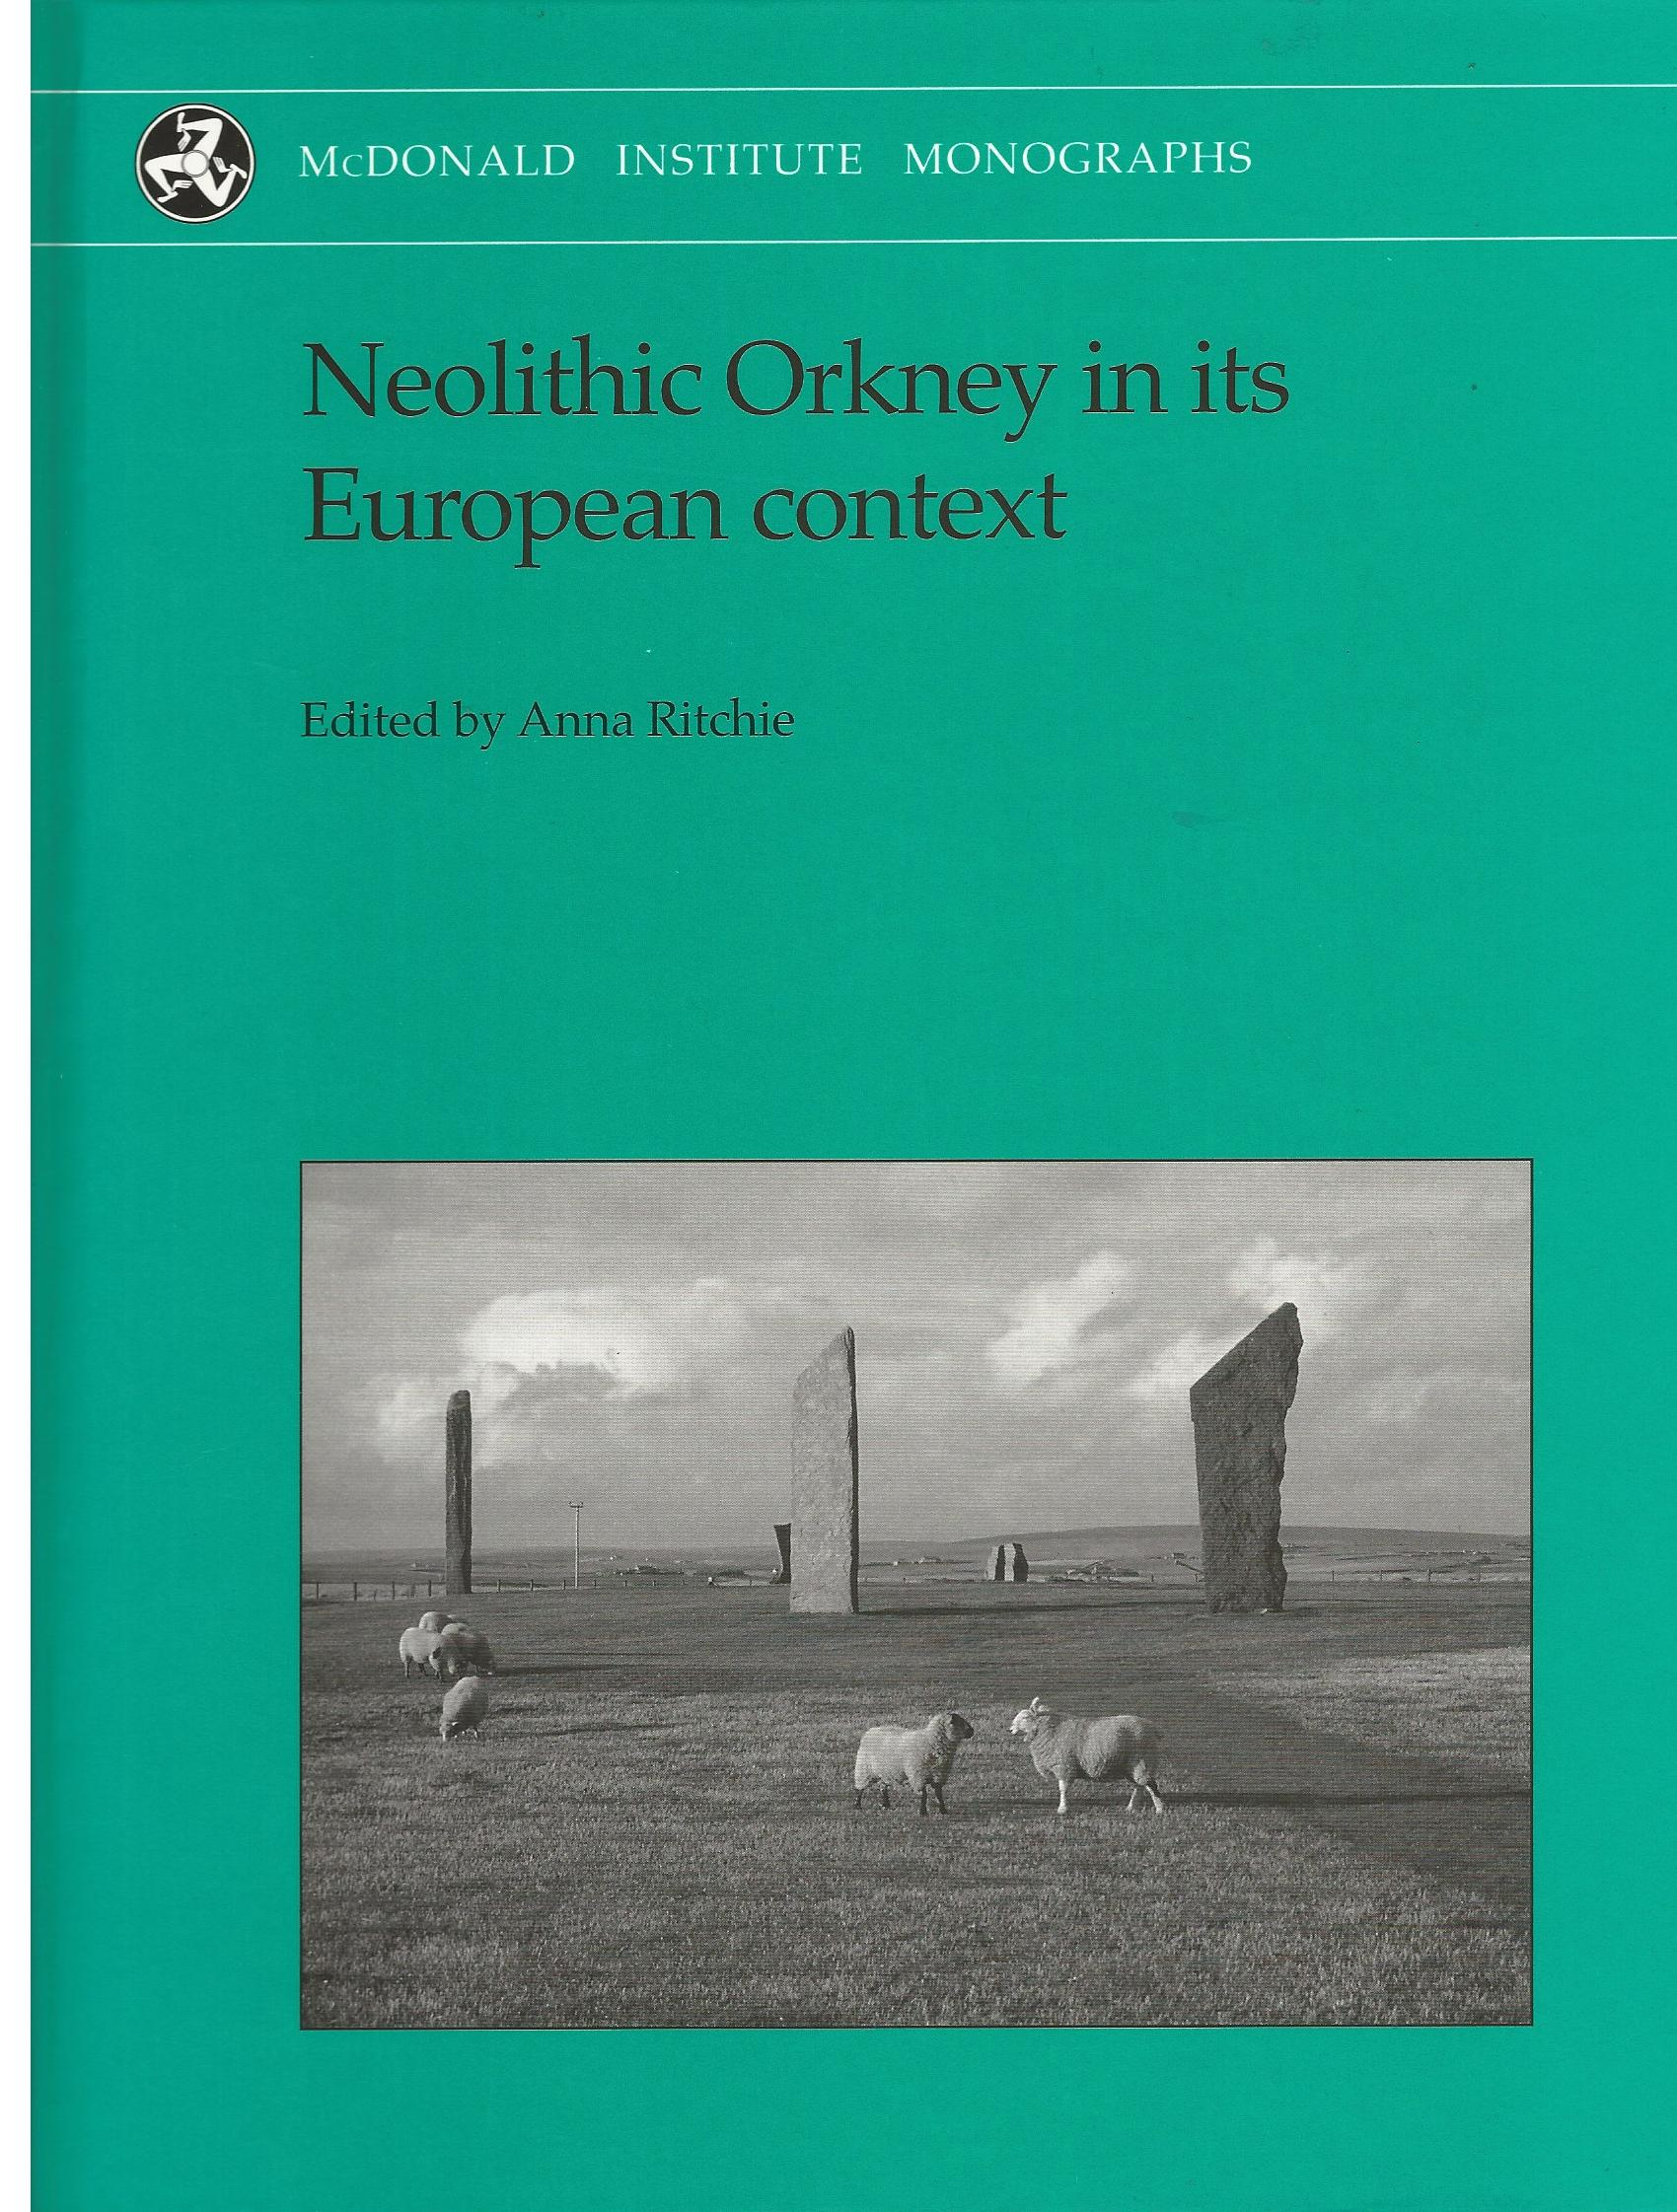 Image for Neolithic Orkney in its European context (Monograph Series)